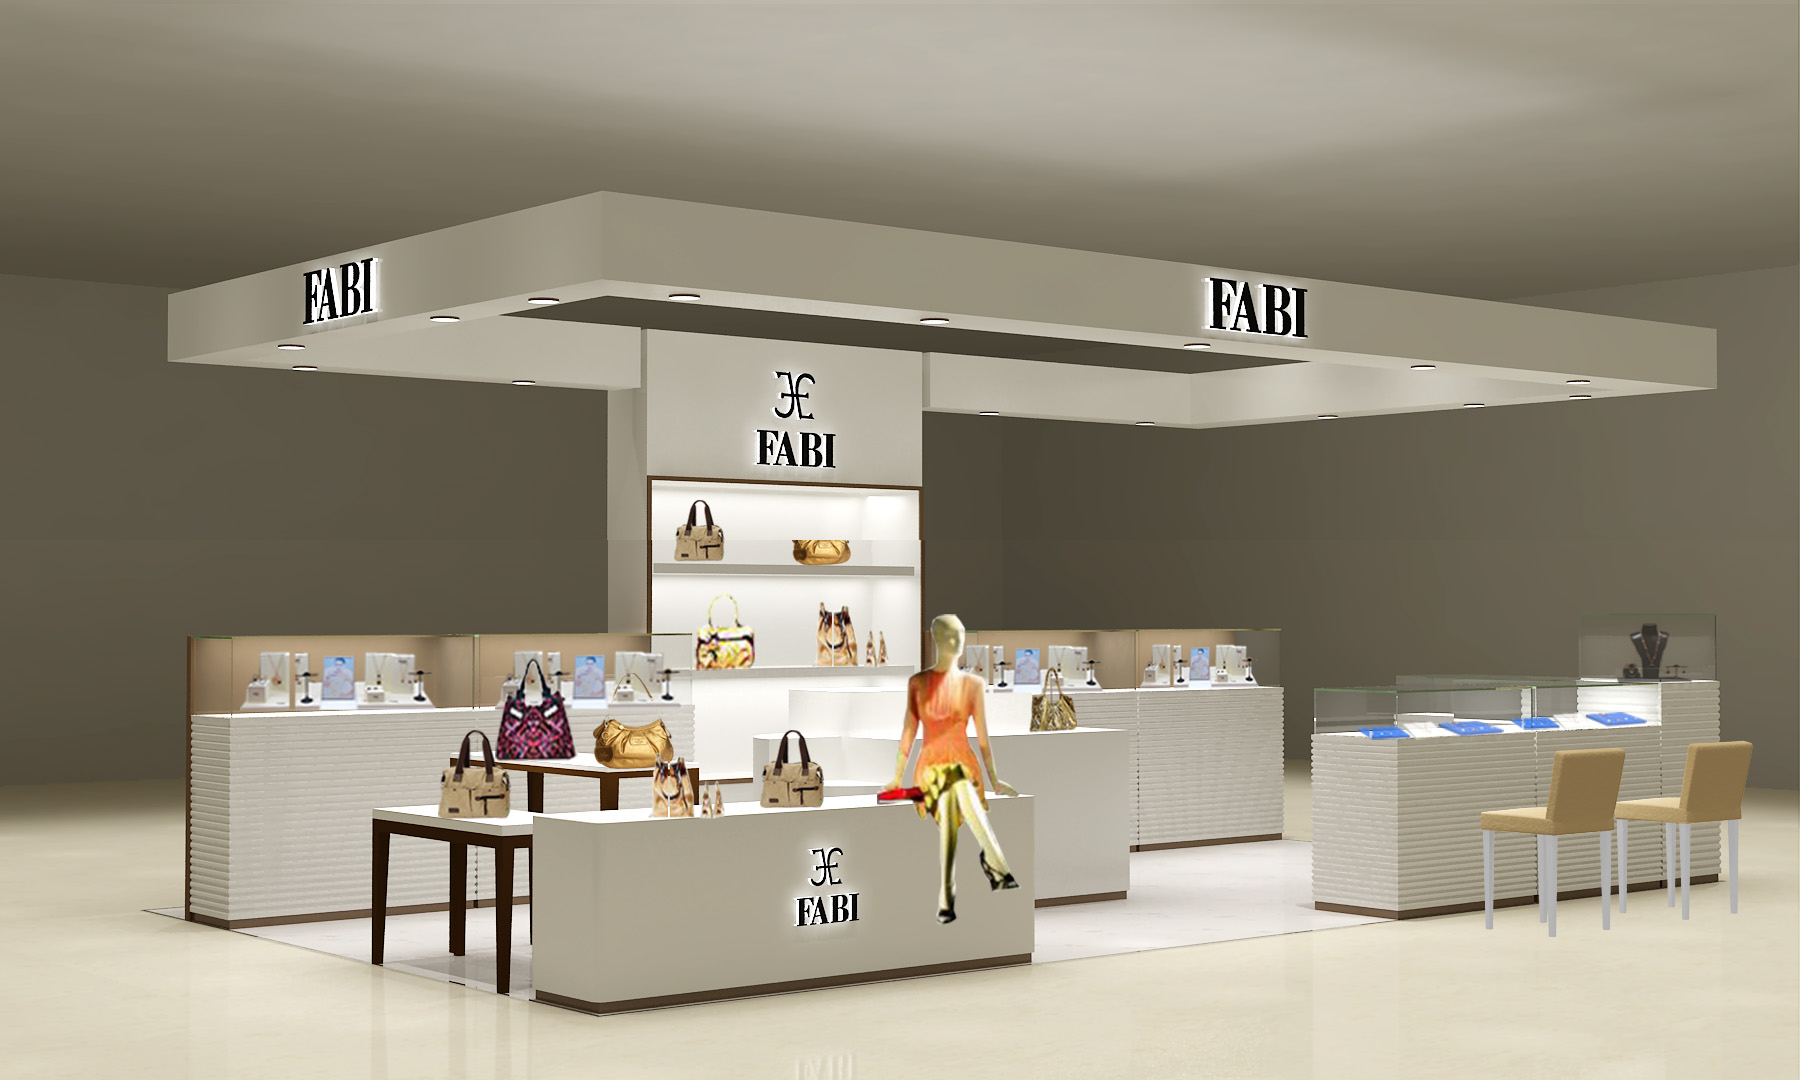 FABI Mall Kiosk is pure PU Painting work.